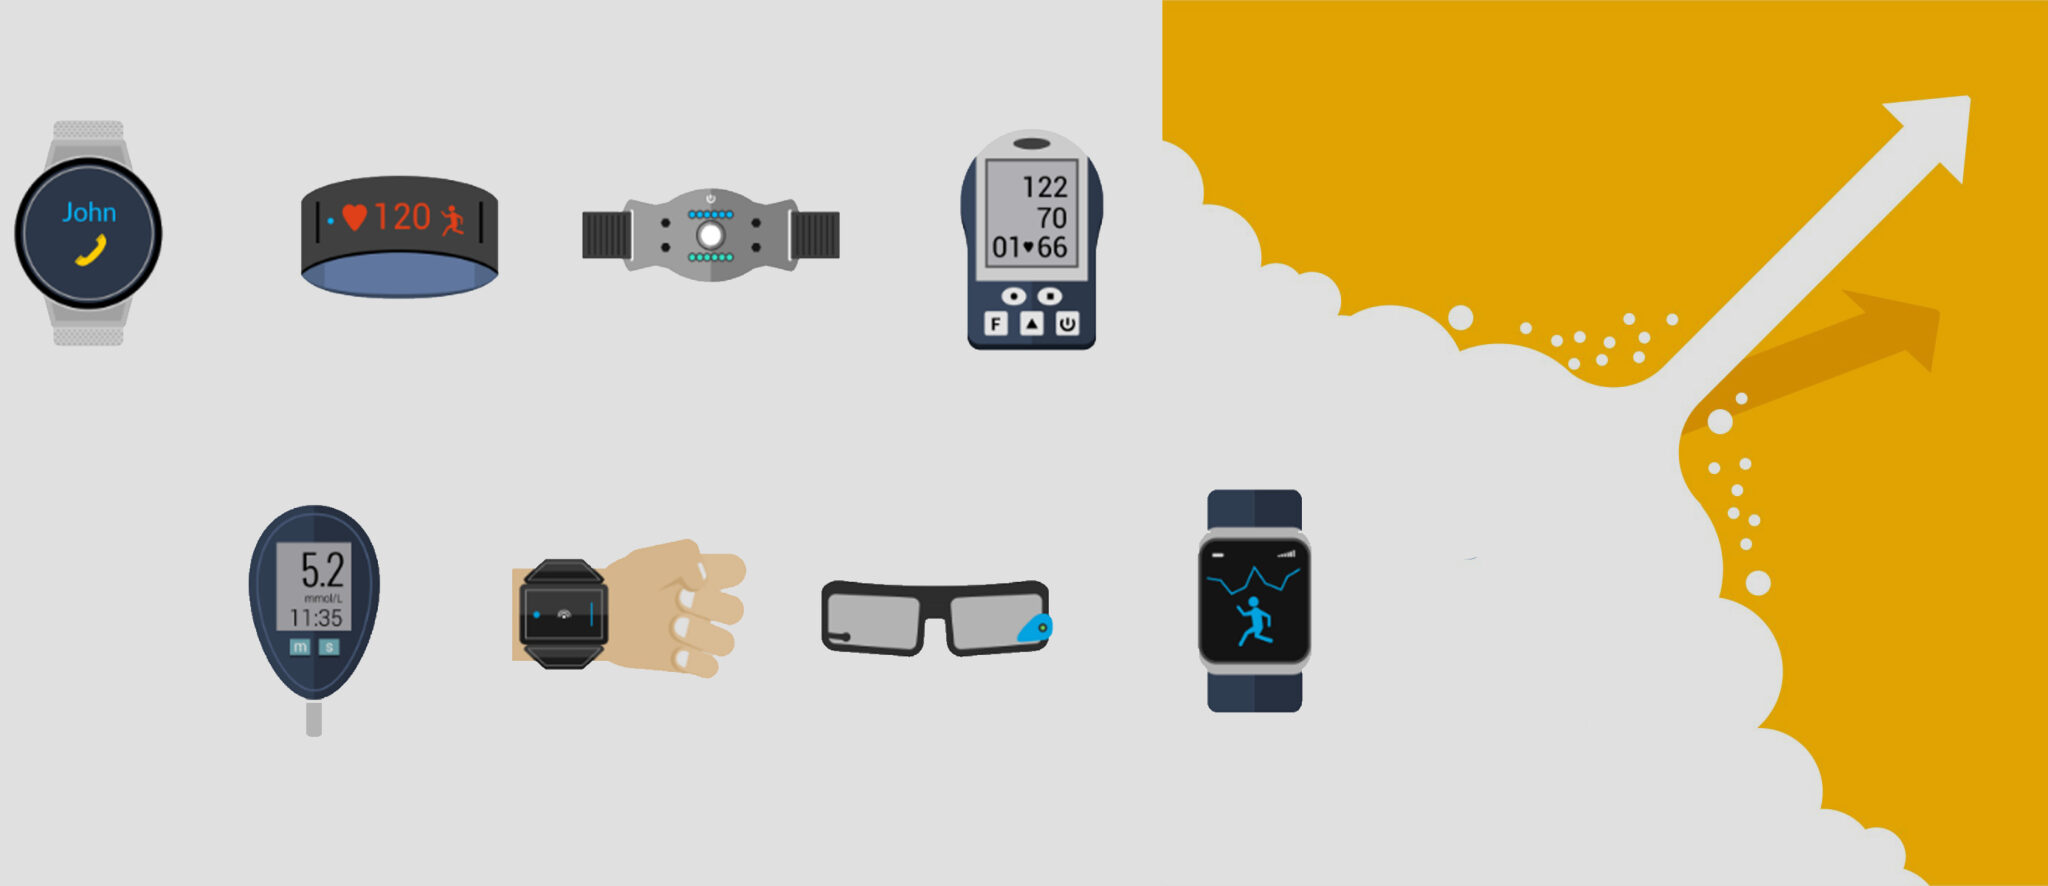 The Wearable Medical Product Market & the Benefits of LSR for Speed-to-Market